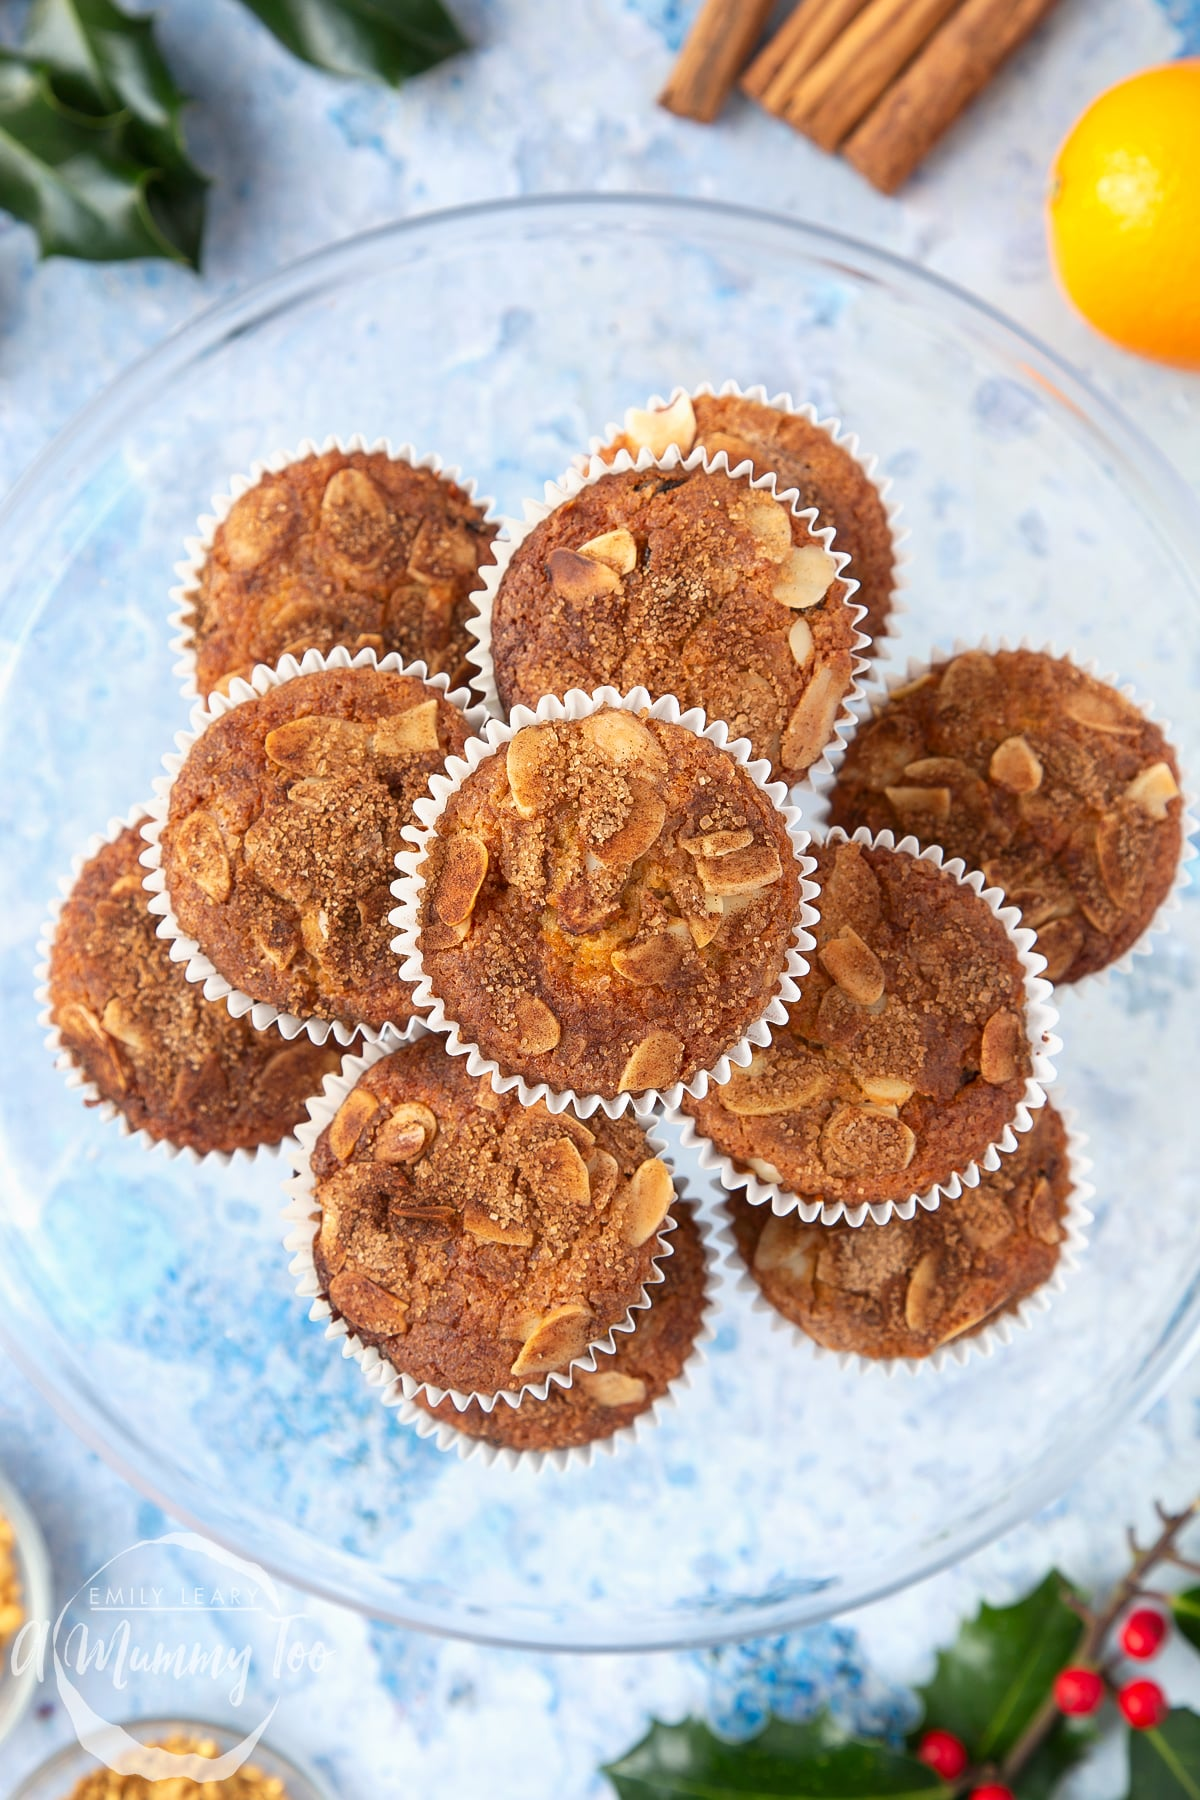 Overhead shot of baked orange and cinnamon muffins stacked in a large clear bowl